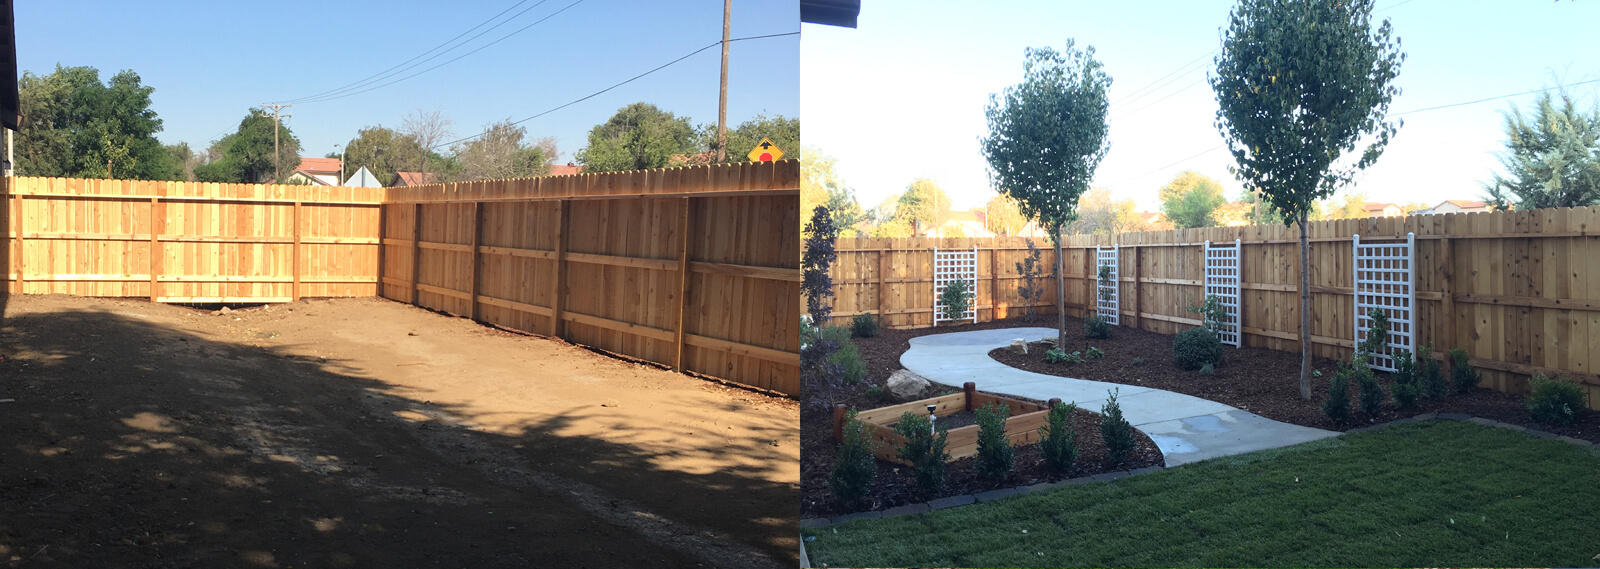 tehachapi landscaped backyard before and after